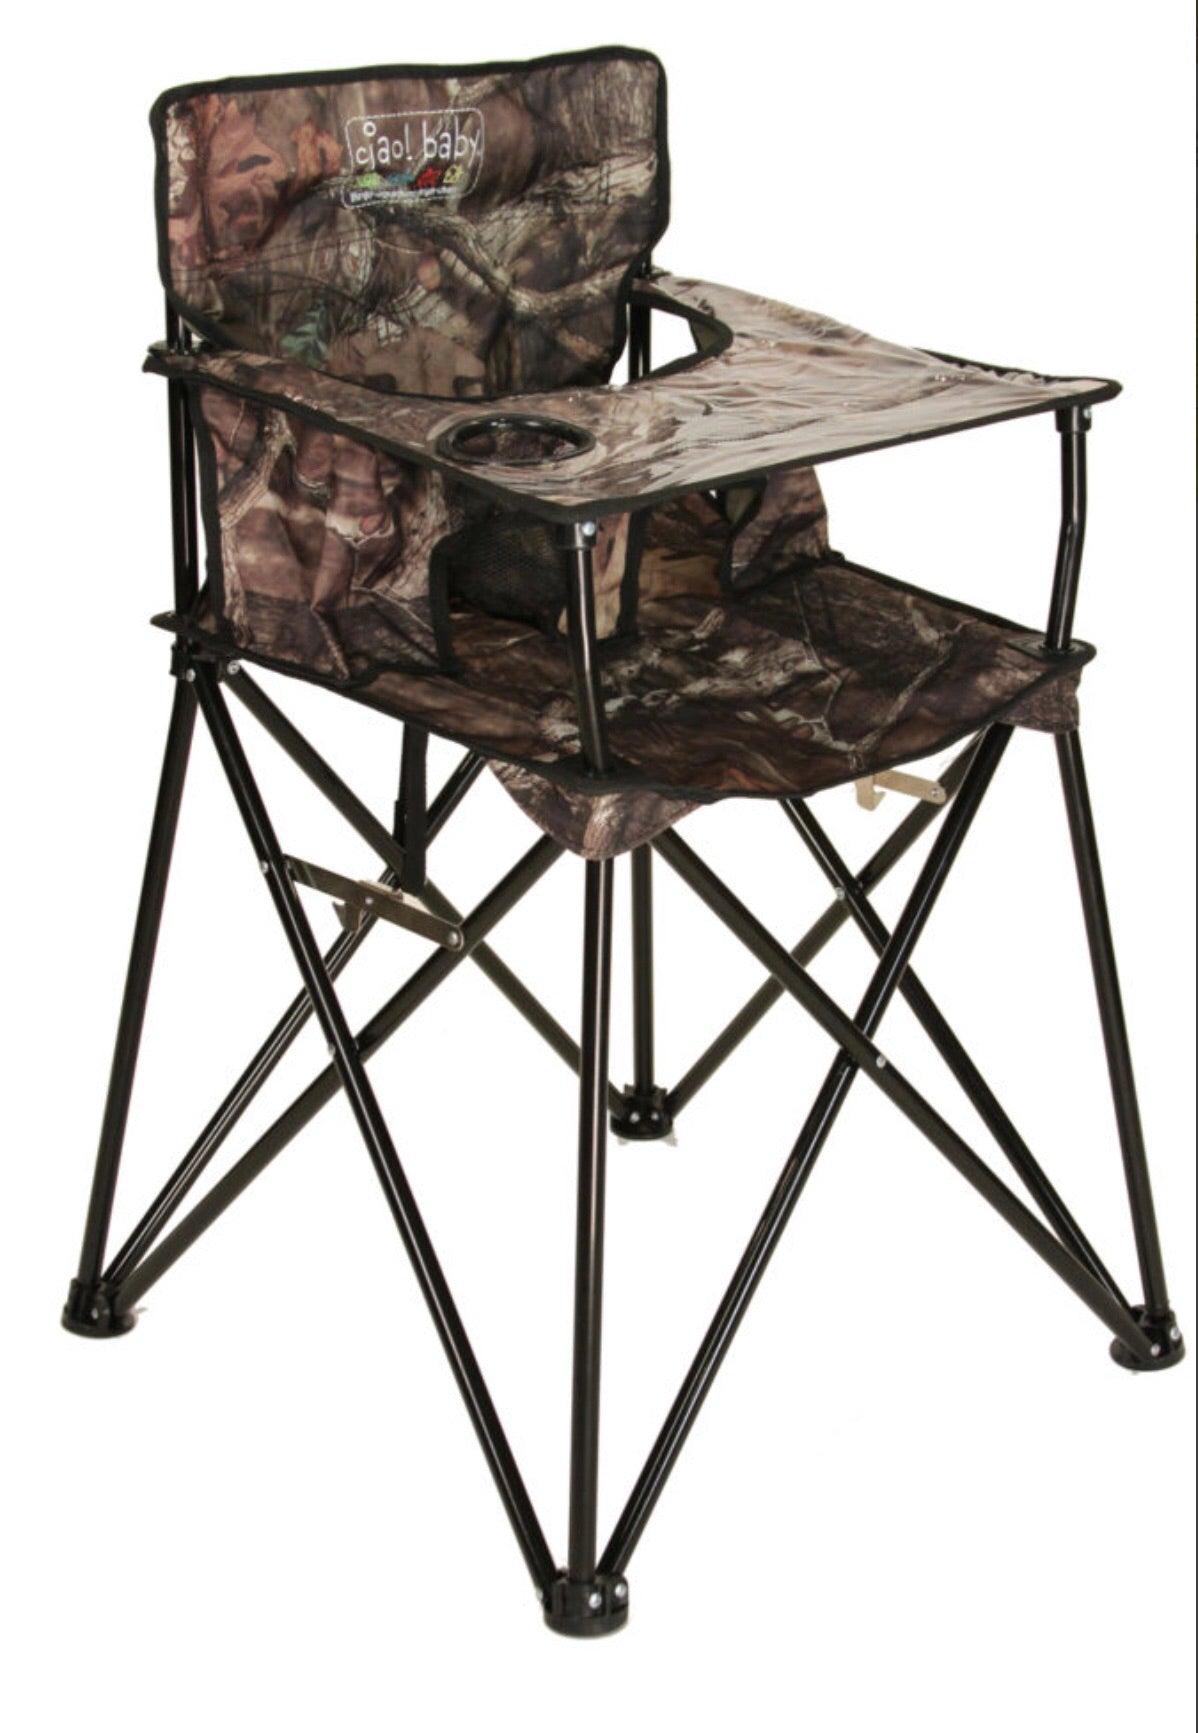 Awesome Ciao Baby Mossy Oak Portable High Chair Gmtry Best Dining Table And Chair Ideas Images Gmtryco